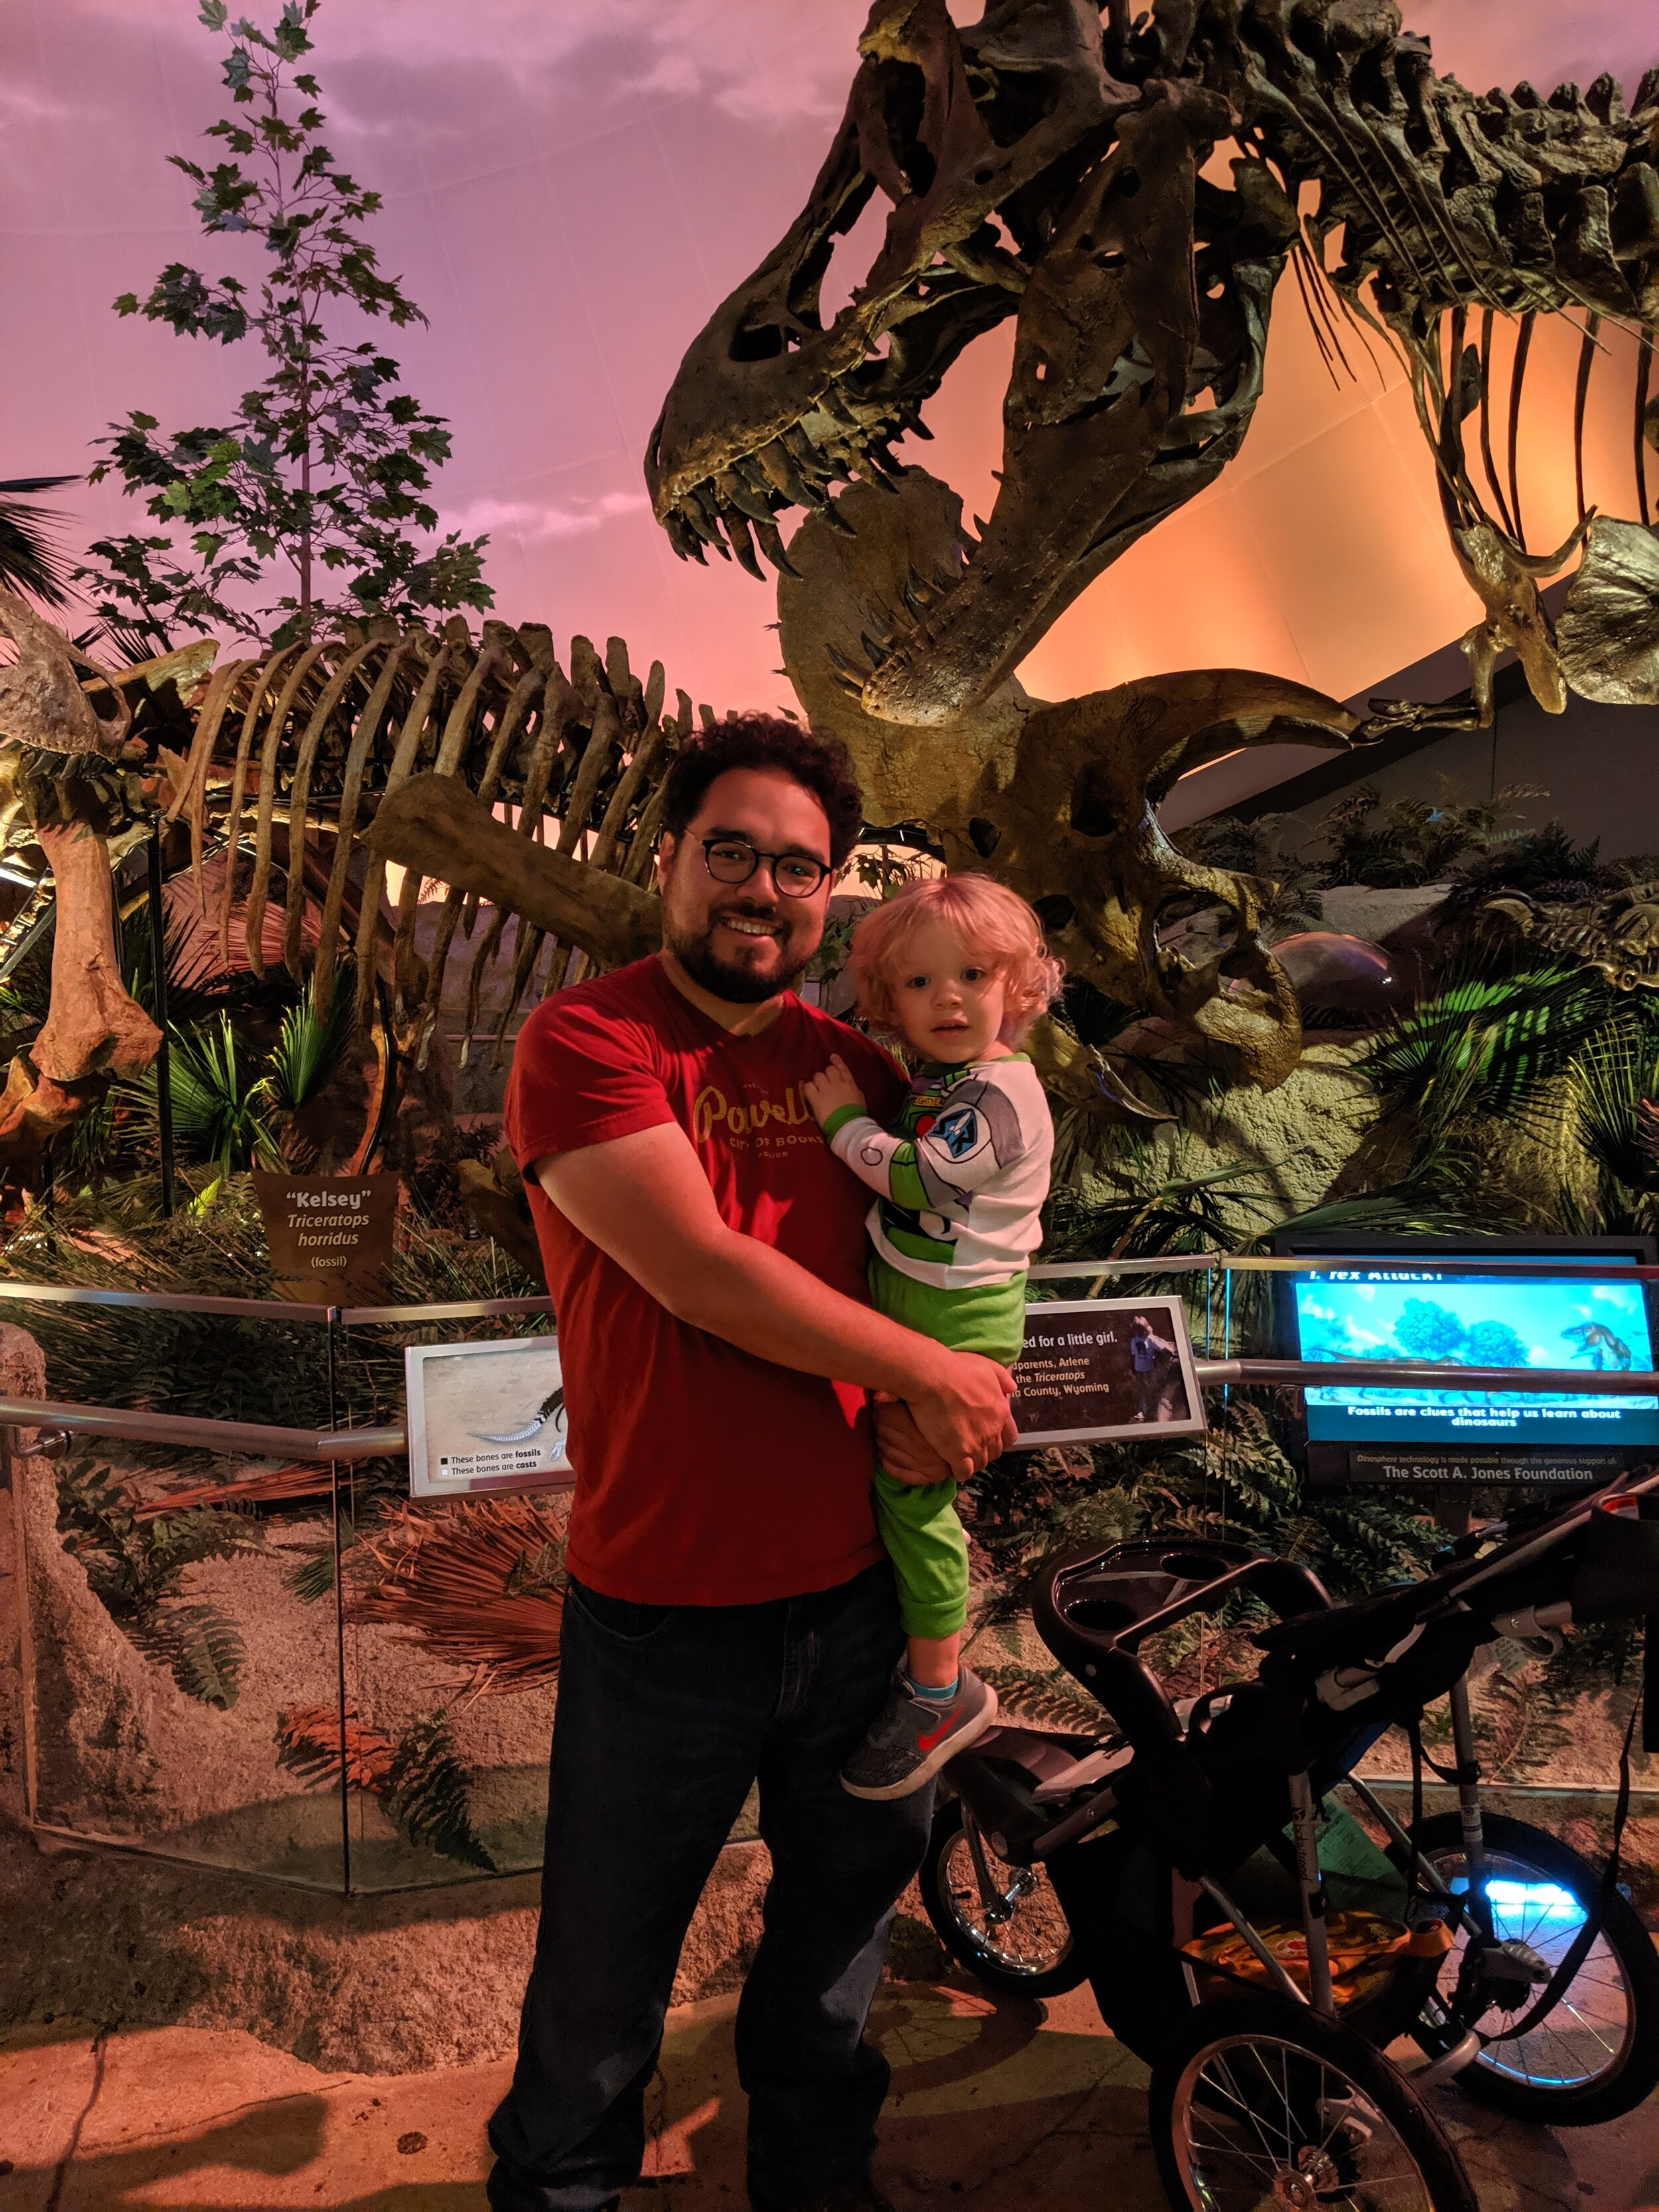 Ries and Gus at the Children's Museum in Indianapolis. Gus thinks he is simultaneous Buzz Lightyear and a T-Rex.